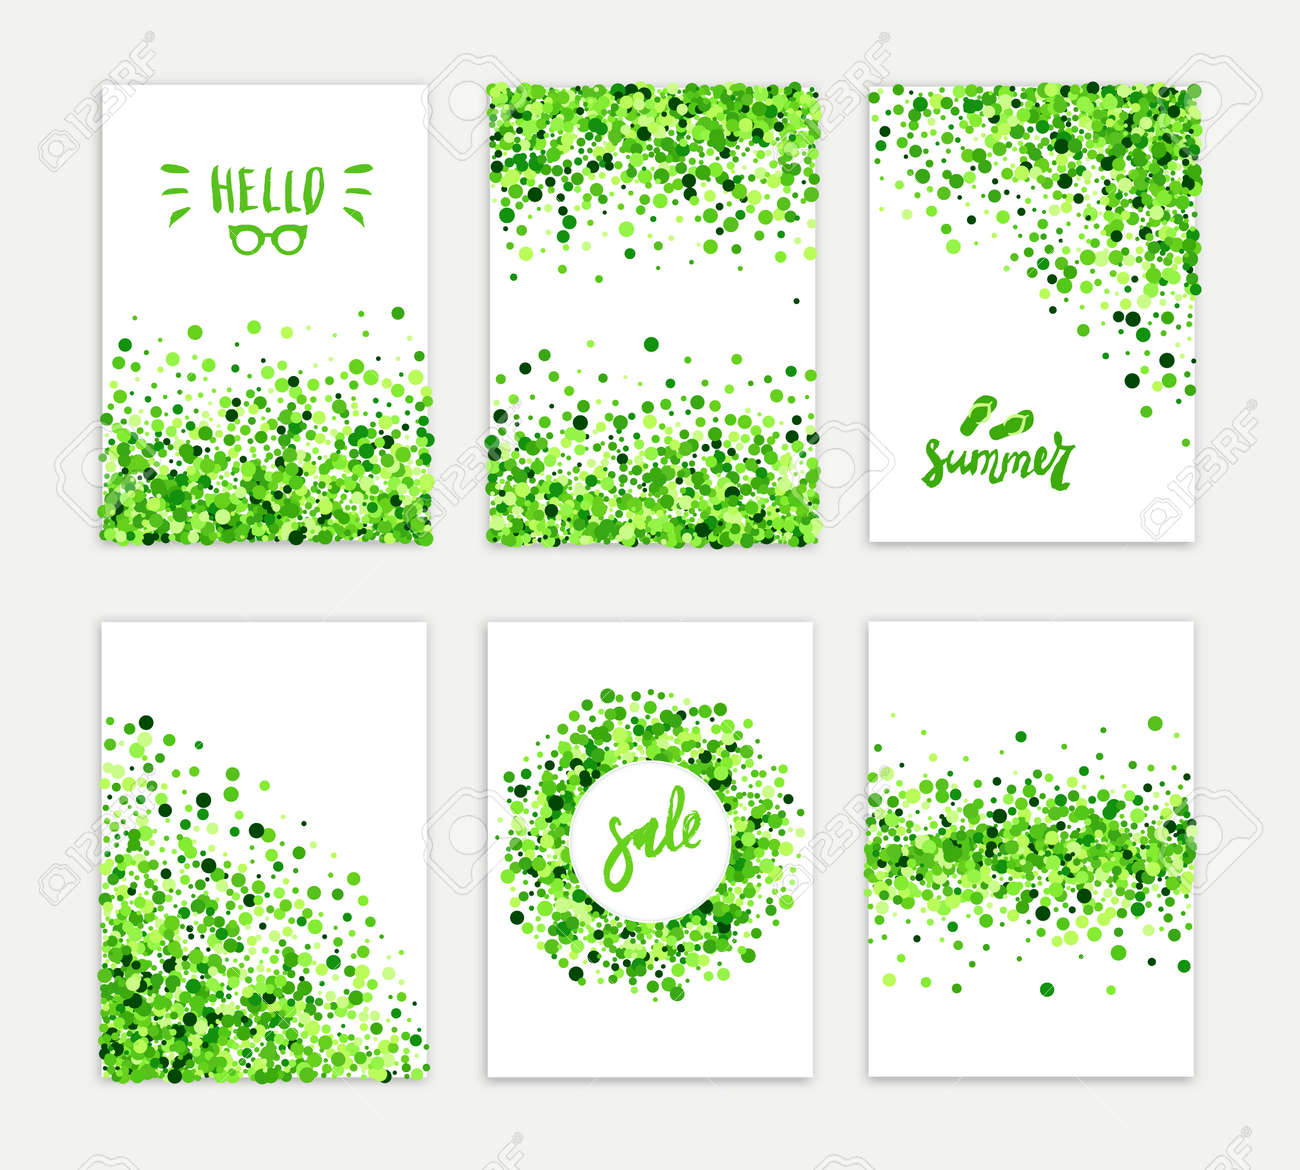 Summer sale vector creative six greeting card set of green round particles. Scattered confetti circles. All isolated and layered - 165418776